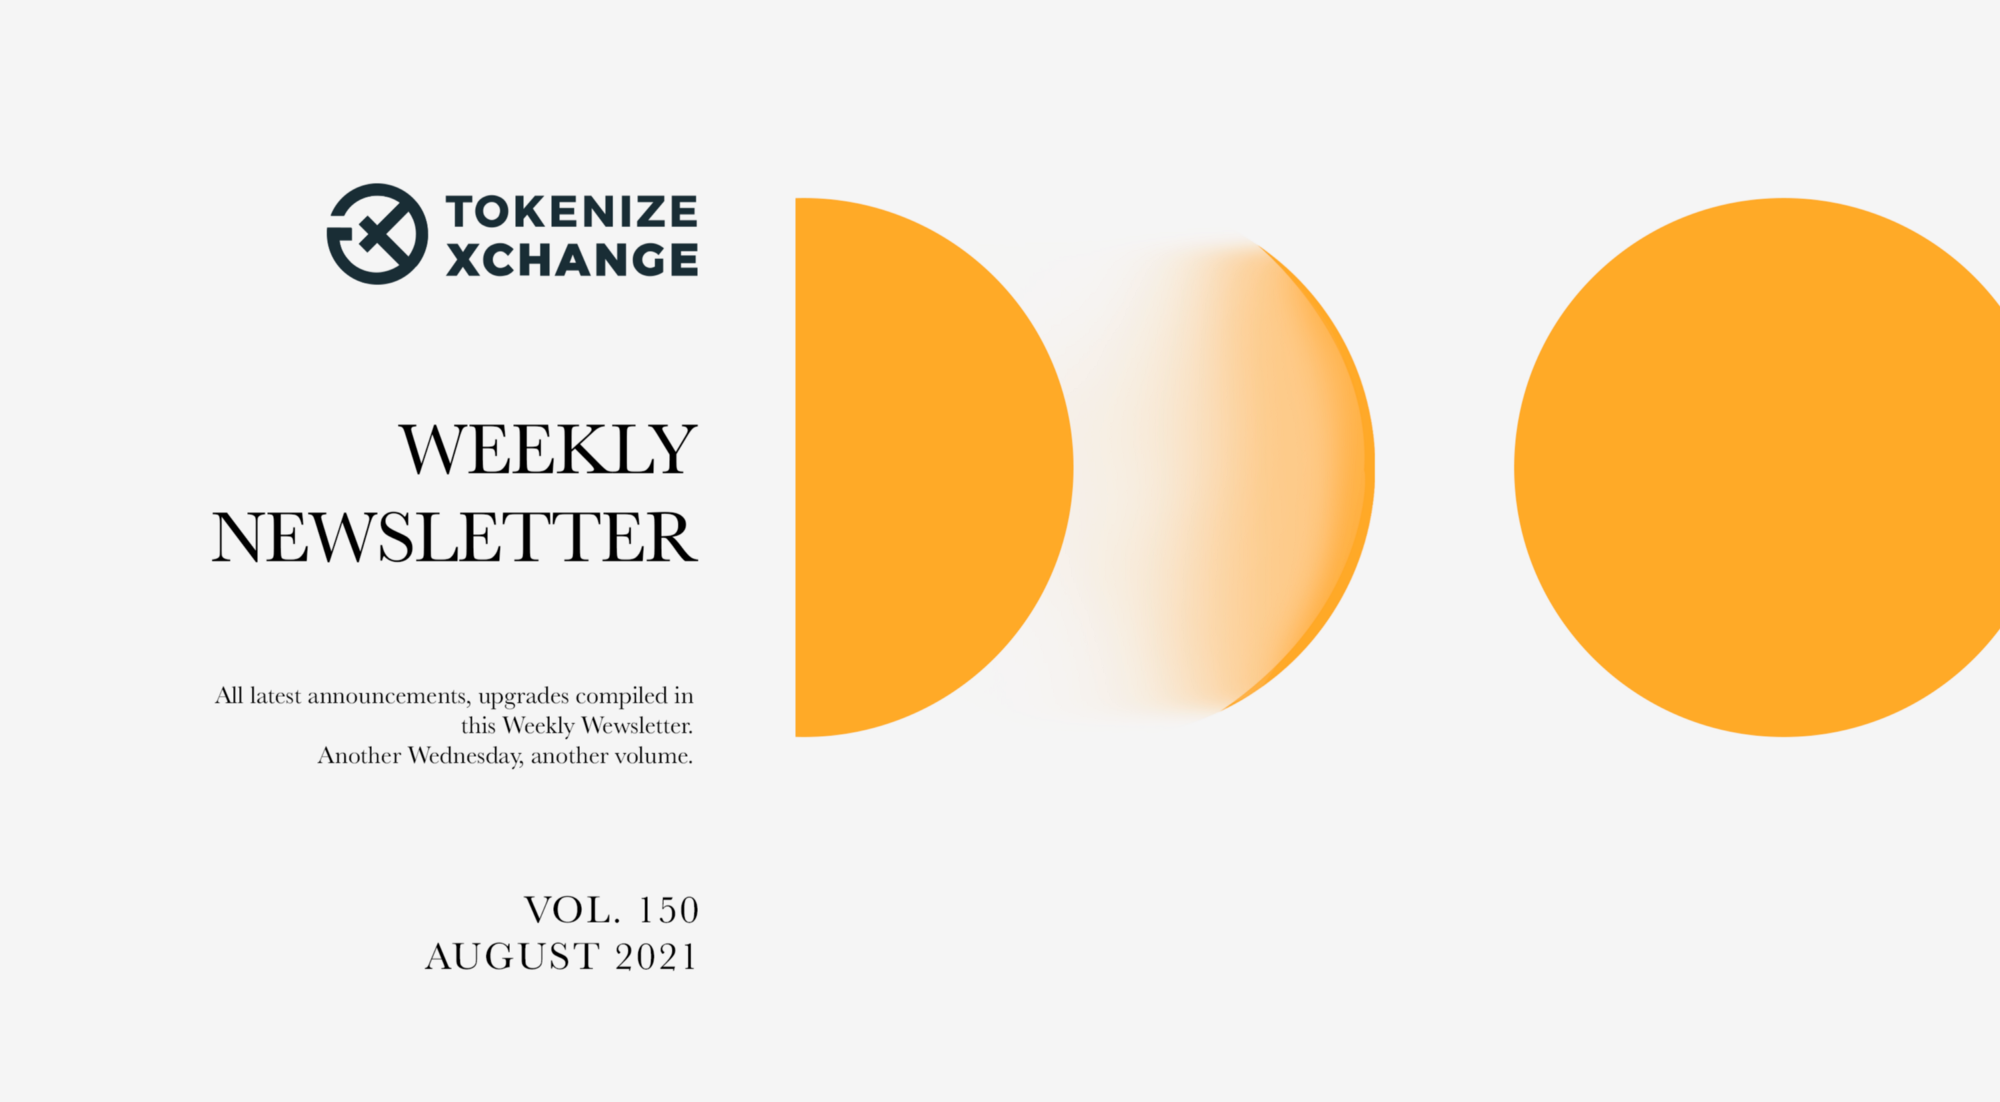 The Newsletter by Tokenize Xchange (Vol.150| Aug 2021)